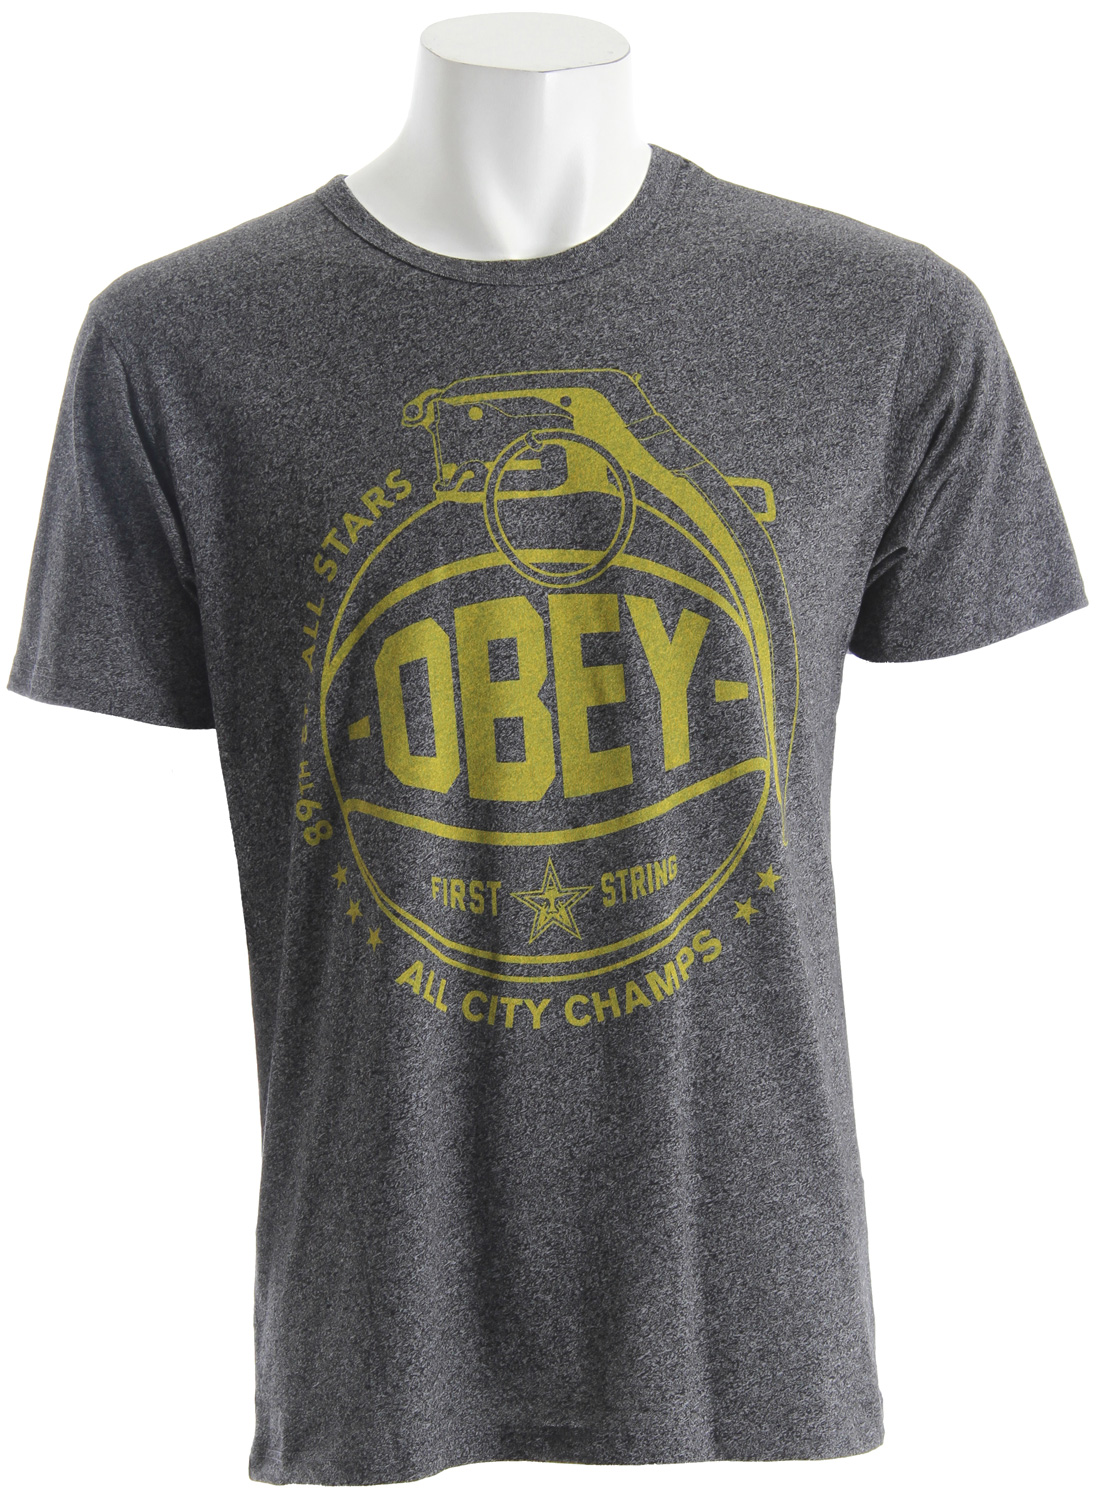 OBEY extra soft, lightweight, slim-fit tee with salt and pepper effect and bound neck and armholes. 50% Polyester / 50% Cotton - $27.95